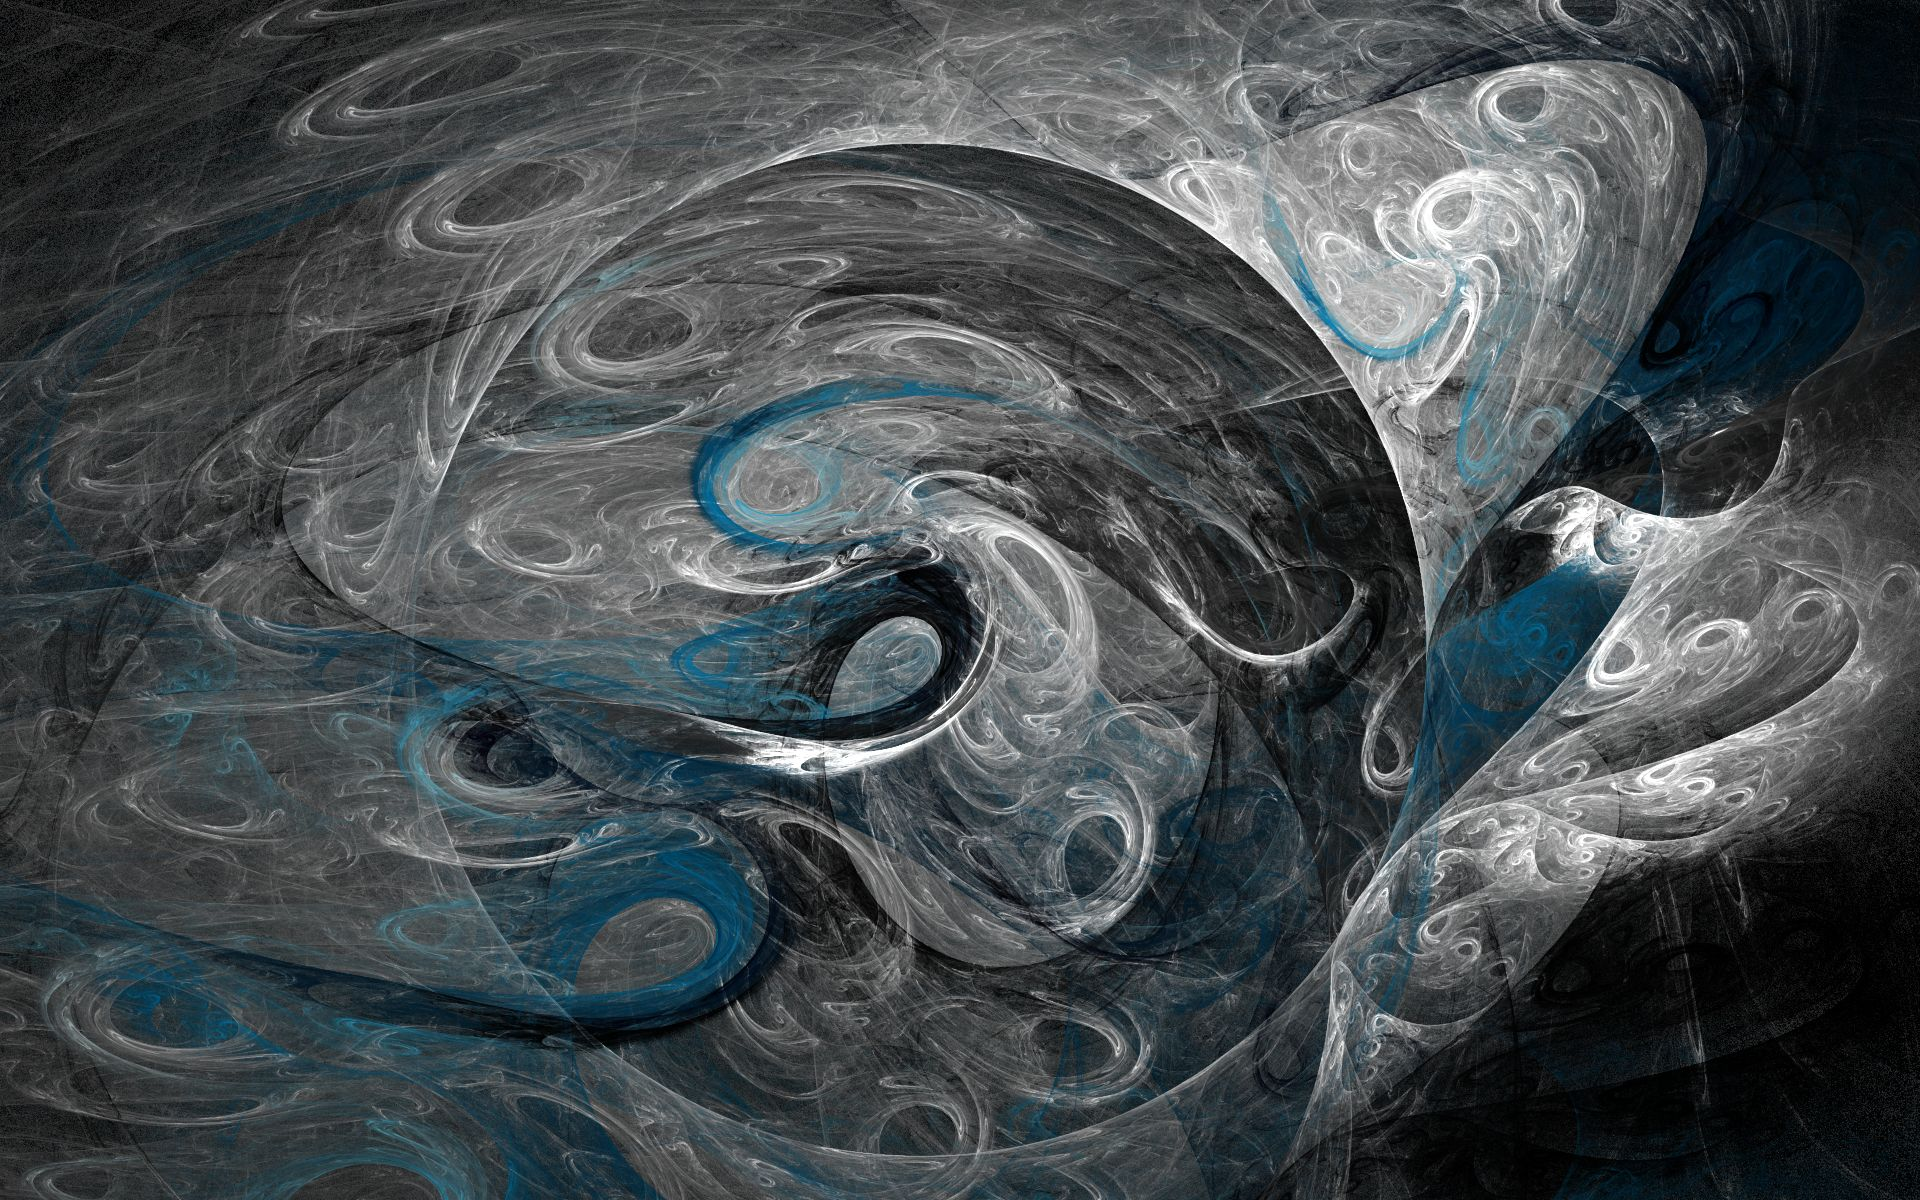 Abstract - Black  Artistic Colors Shapes Patterns Shades Texture CGI Swirl Abstract Wallpaper